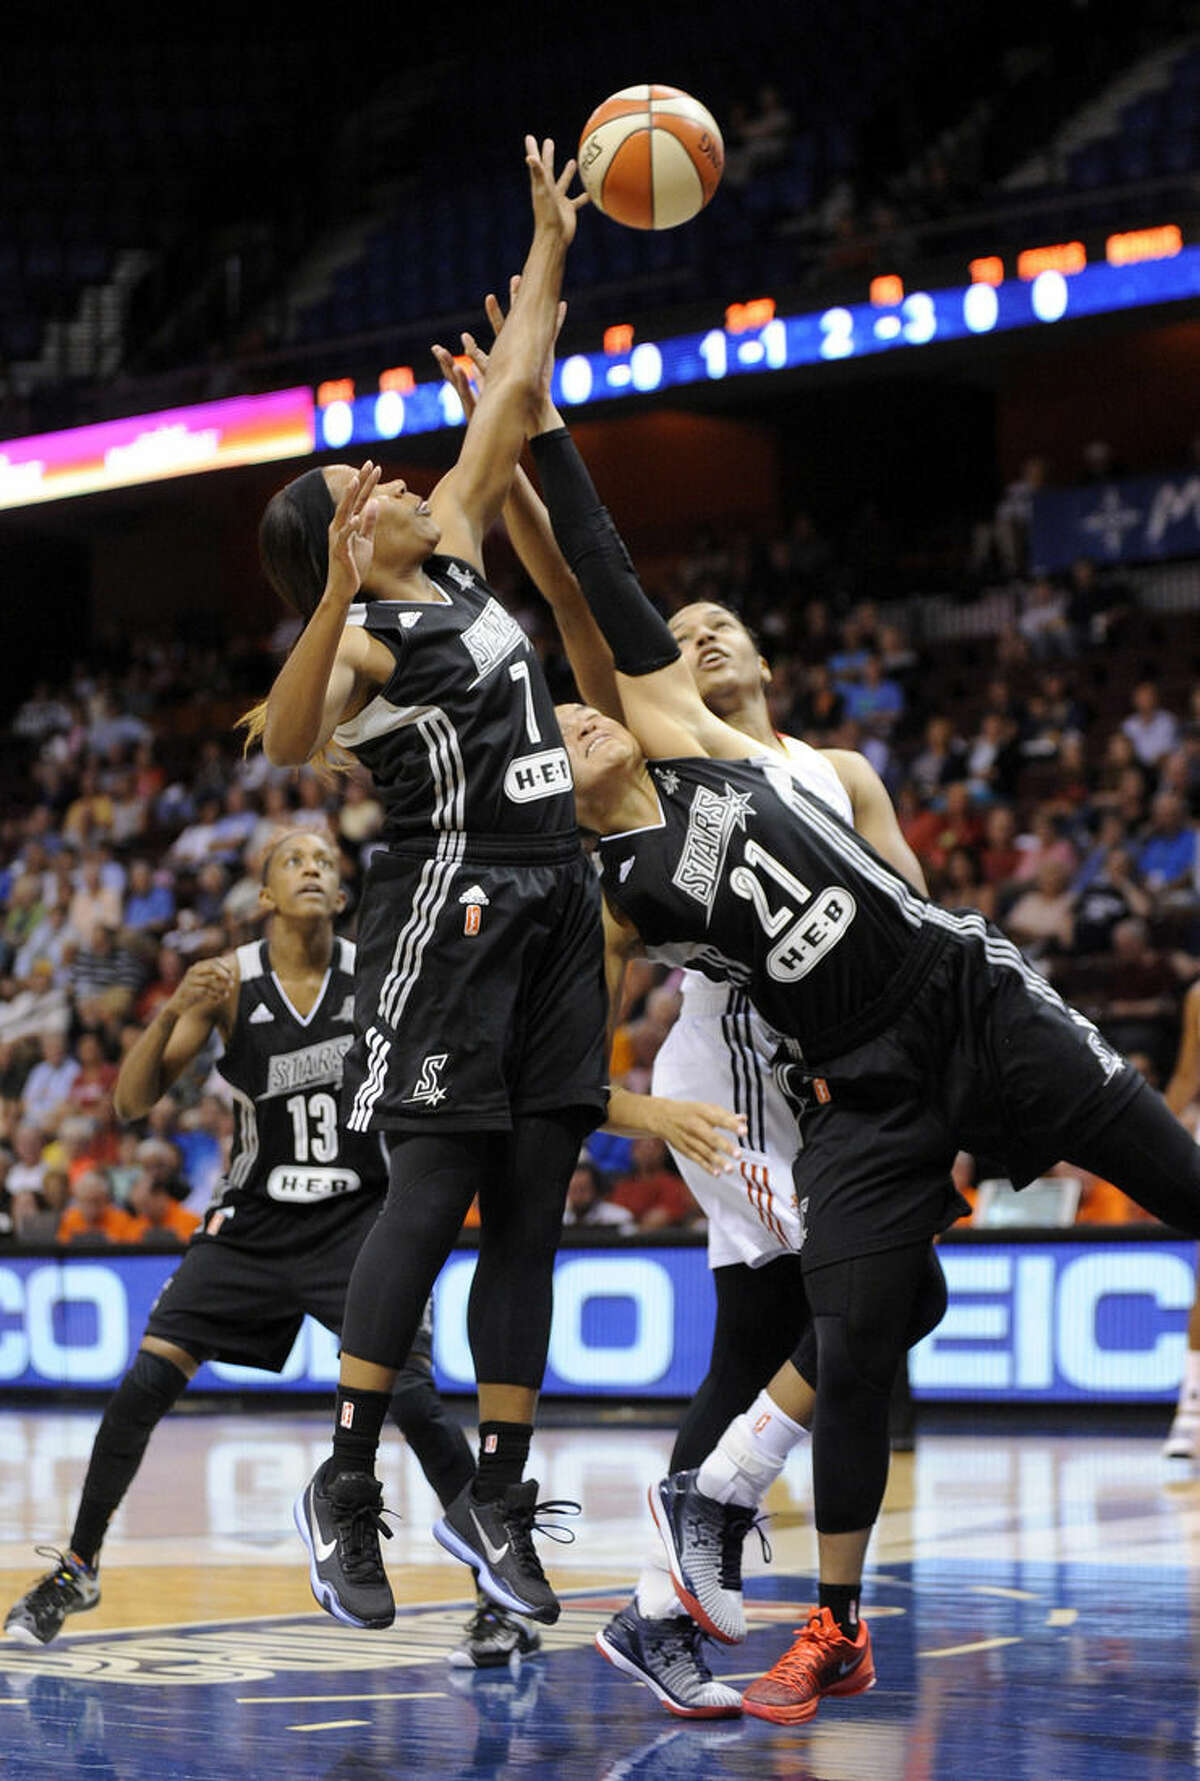 San Antonio Stars's Jia Perkins (7) and Kayla McBride (21) fight for a rebound with Connecticut Sun's Alyssa Thomas (25) during the first half of a WNBA basketball game in Uncasville, Conn., on Tuesday, Aug. 4, 2015. (AP Photo/Fred Beckham)